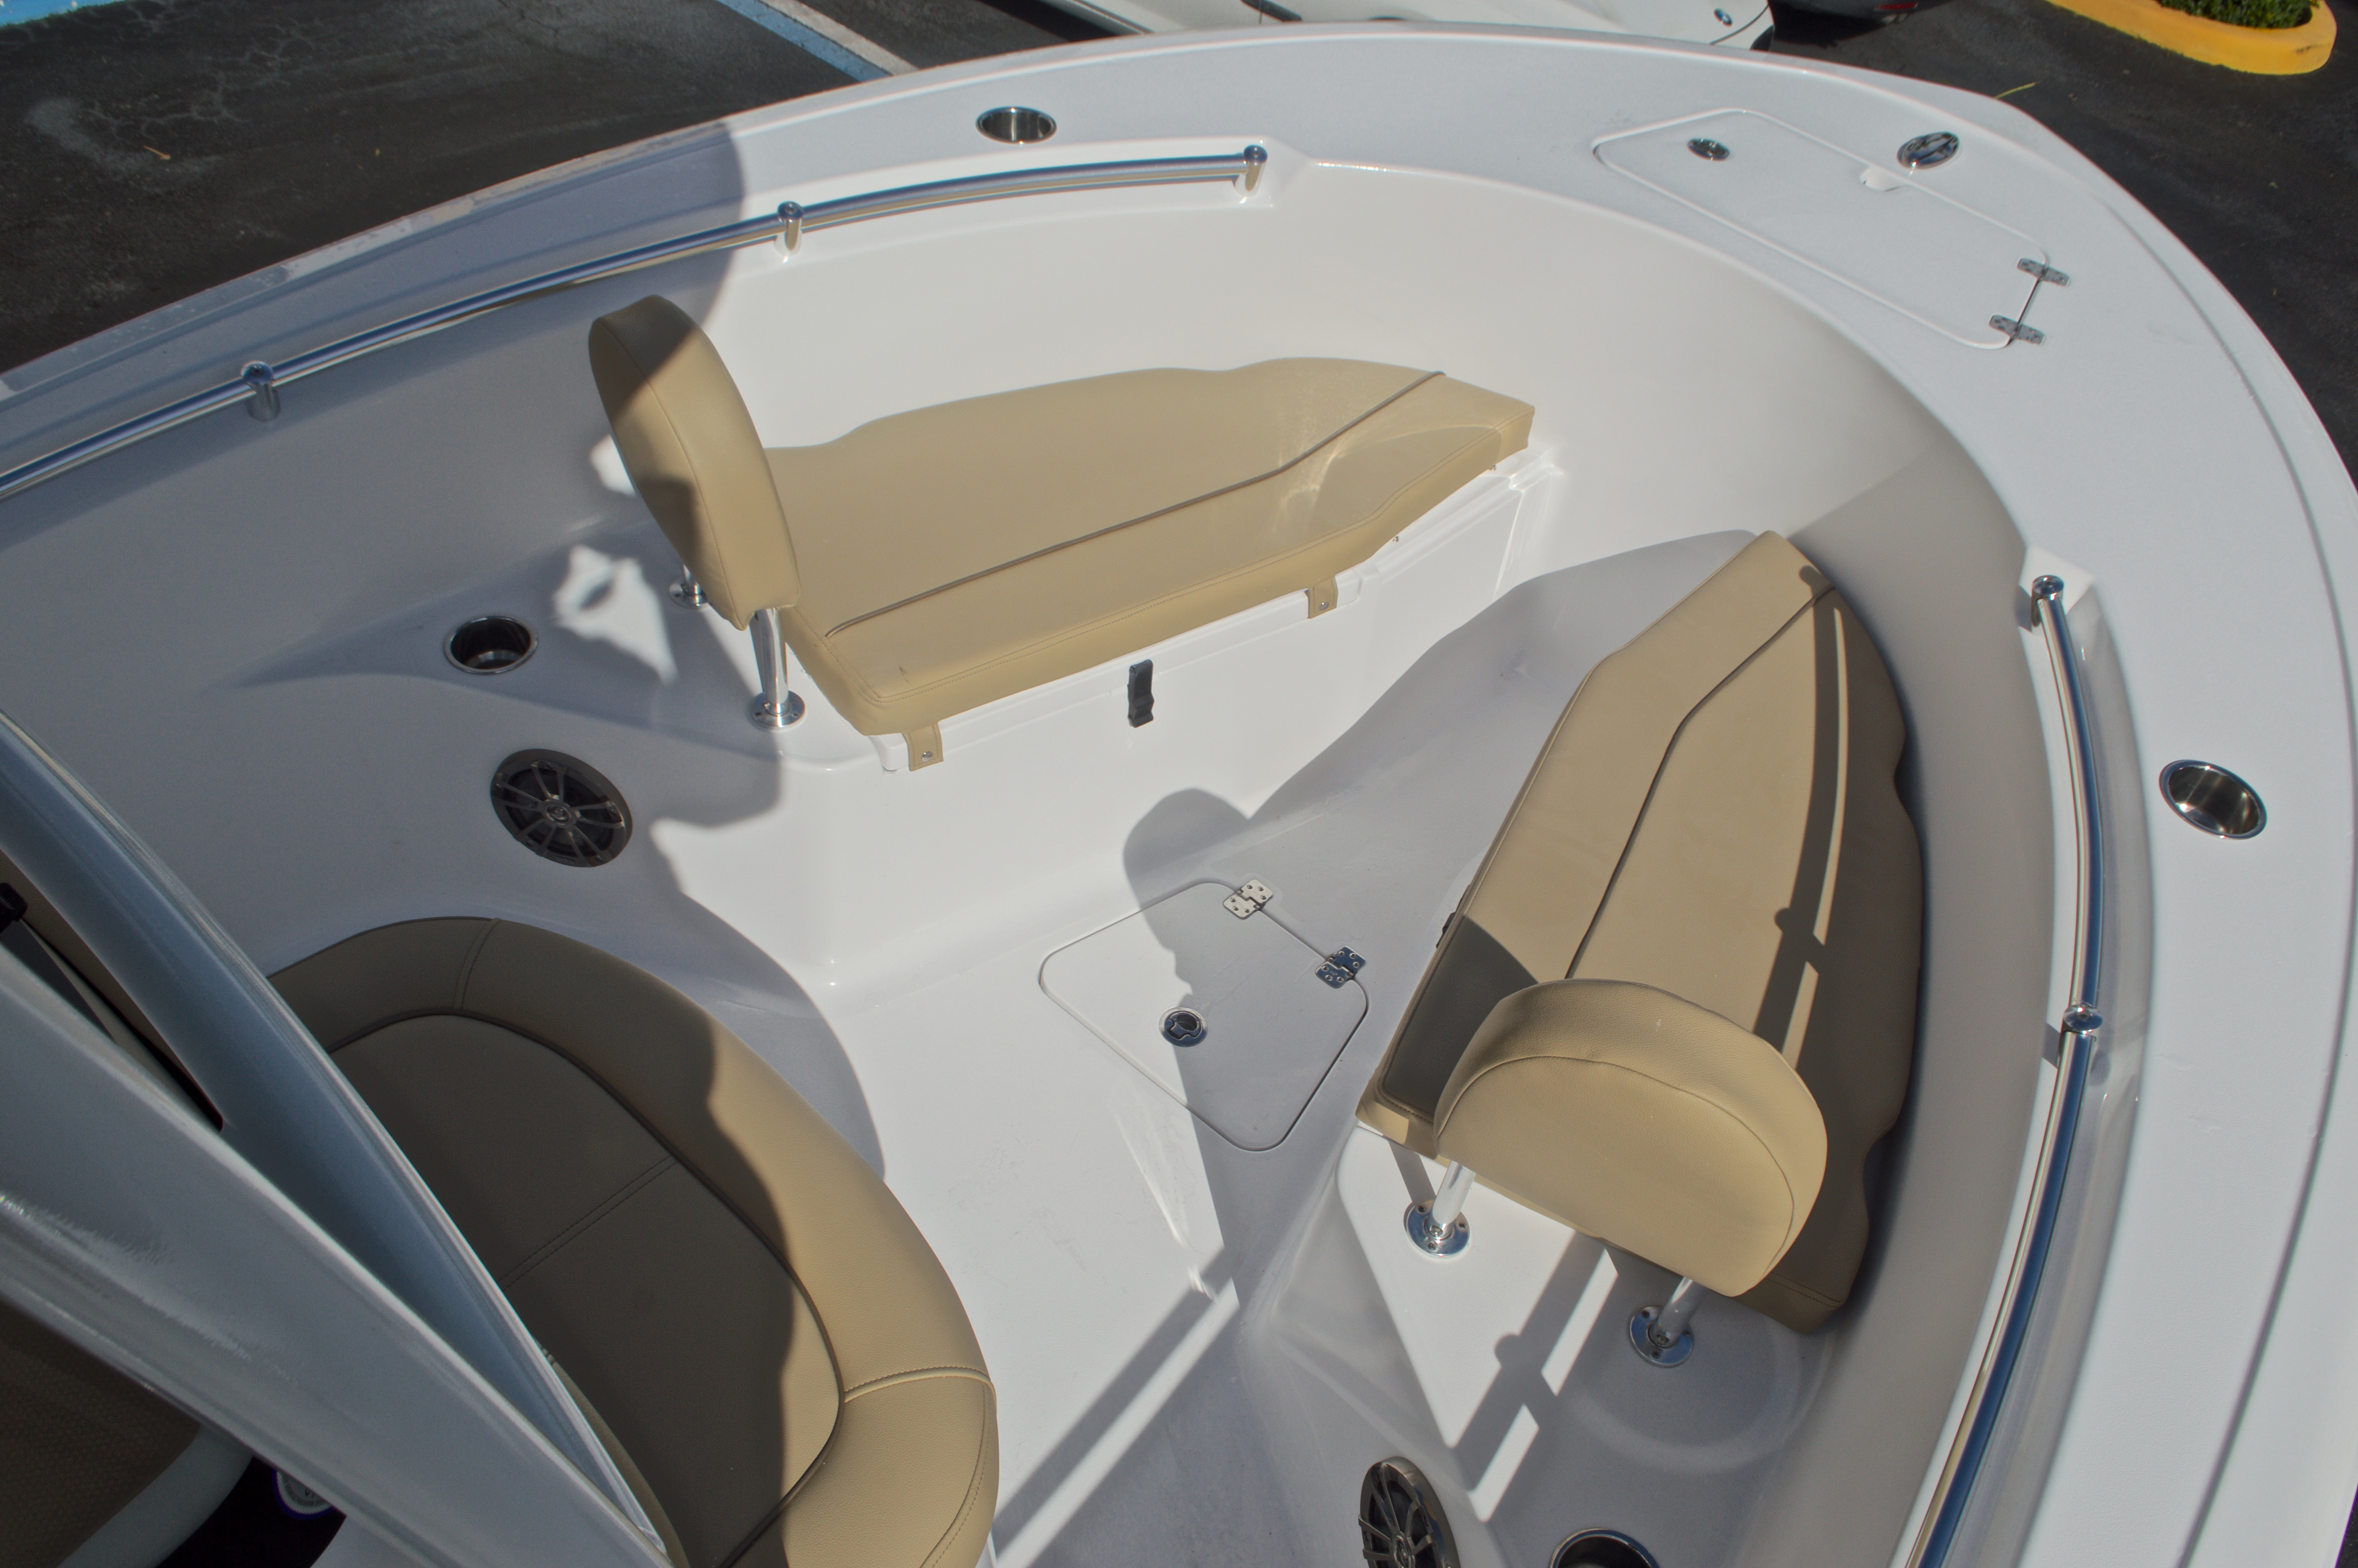 Thumbnail 48 for New 2017 Sportsman Open 212 Center Console boat for sale in West Palm Beach, FL